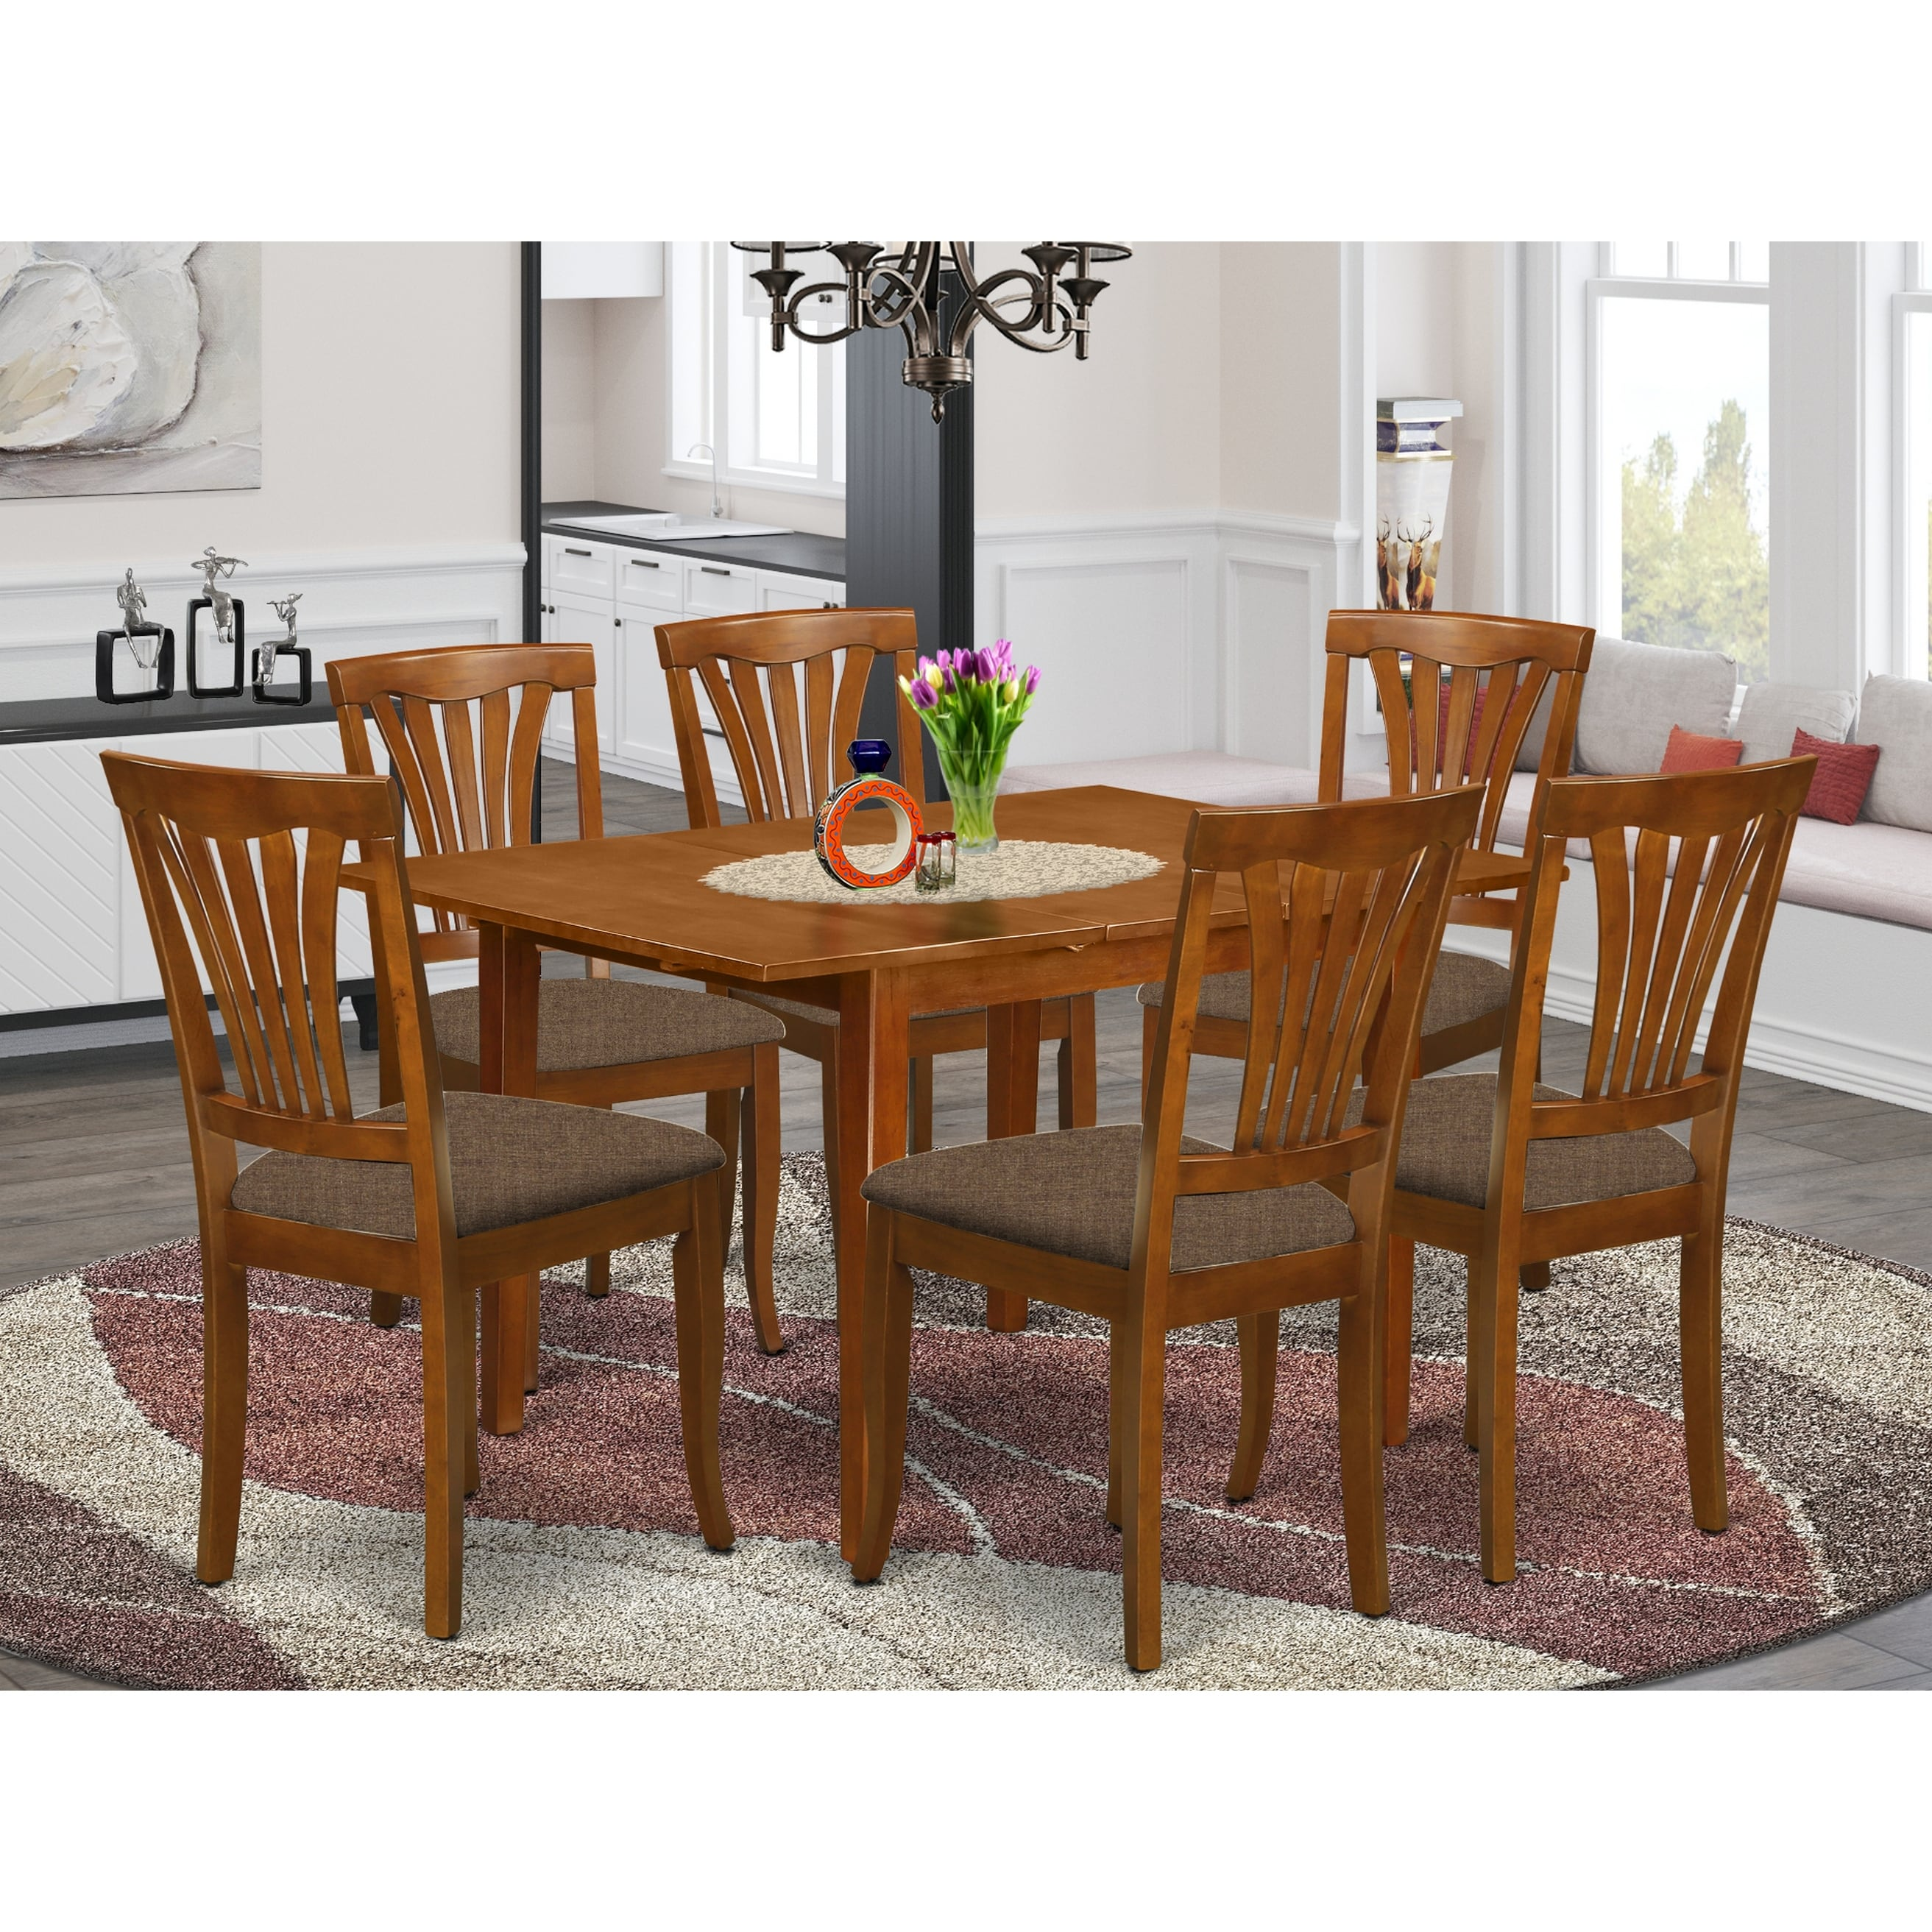 7 Piece Dinette Set Small Kitchen Table And 6 Kitchen Chairs In Saddle Brown Finish On Sale Overstock 10319877